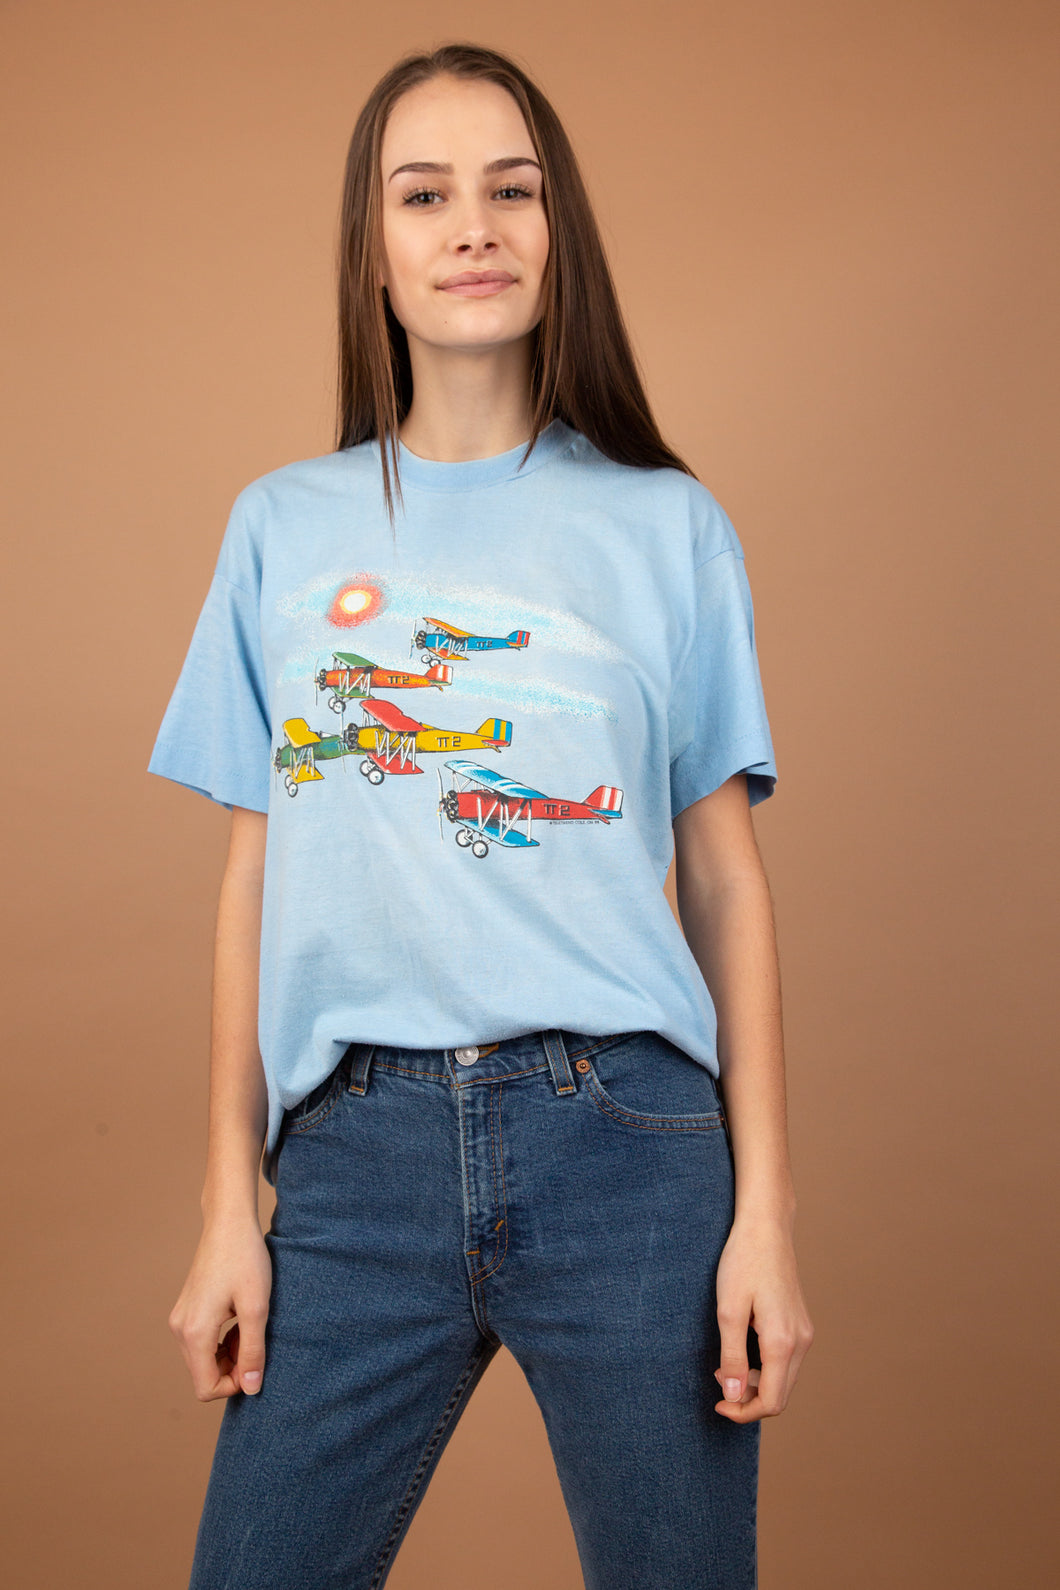 This light blue tee is a soft, loose-fitting top with an aeroplane graphic on the front. Single-stitch and dated '88, this is a vintage must-have.